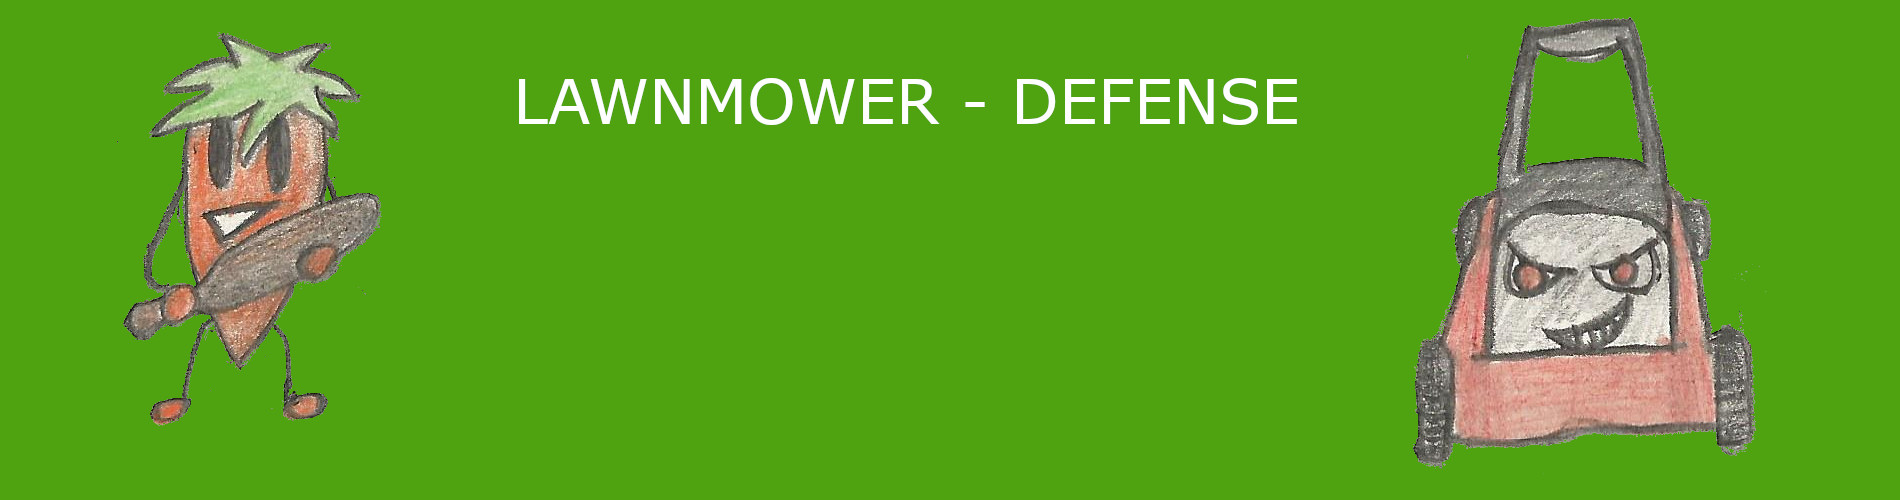 Lawnmower Defense